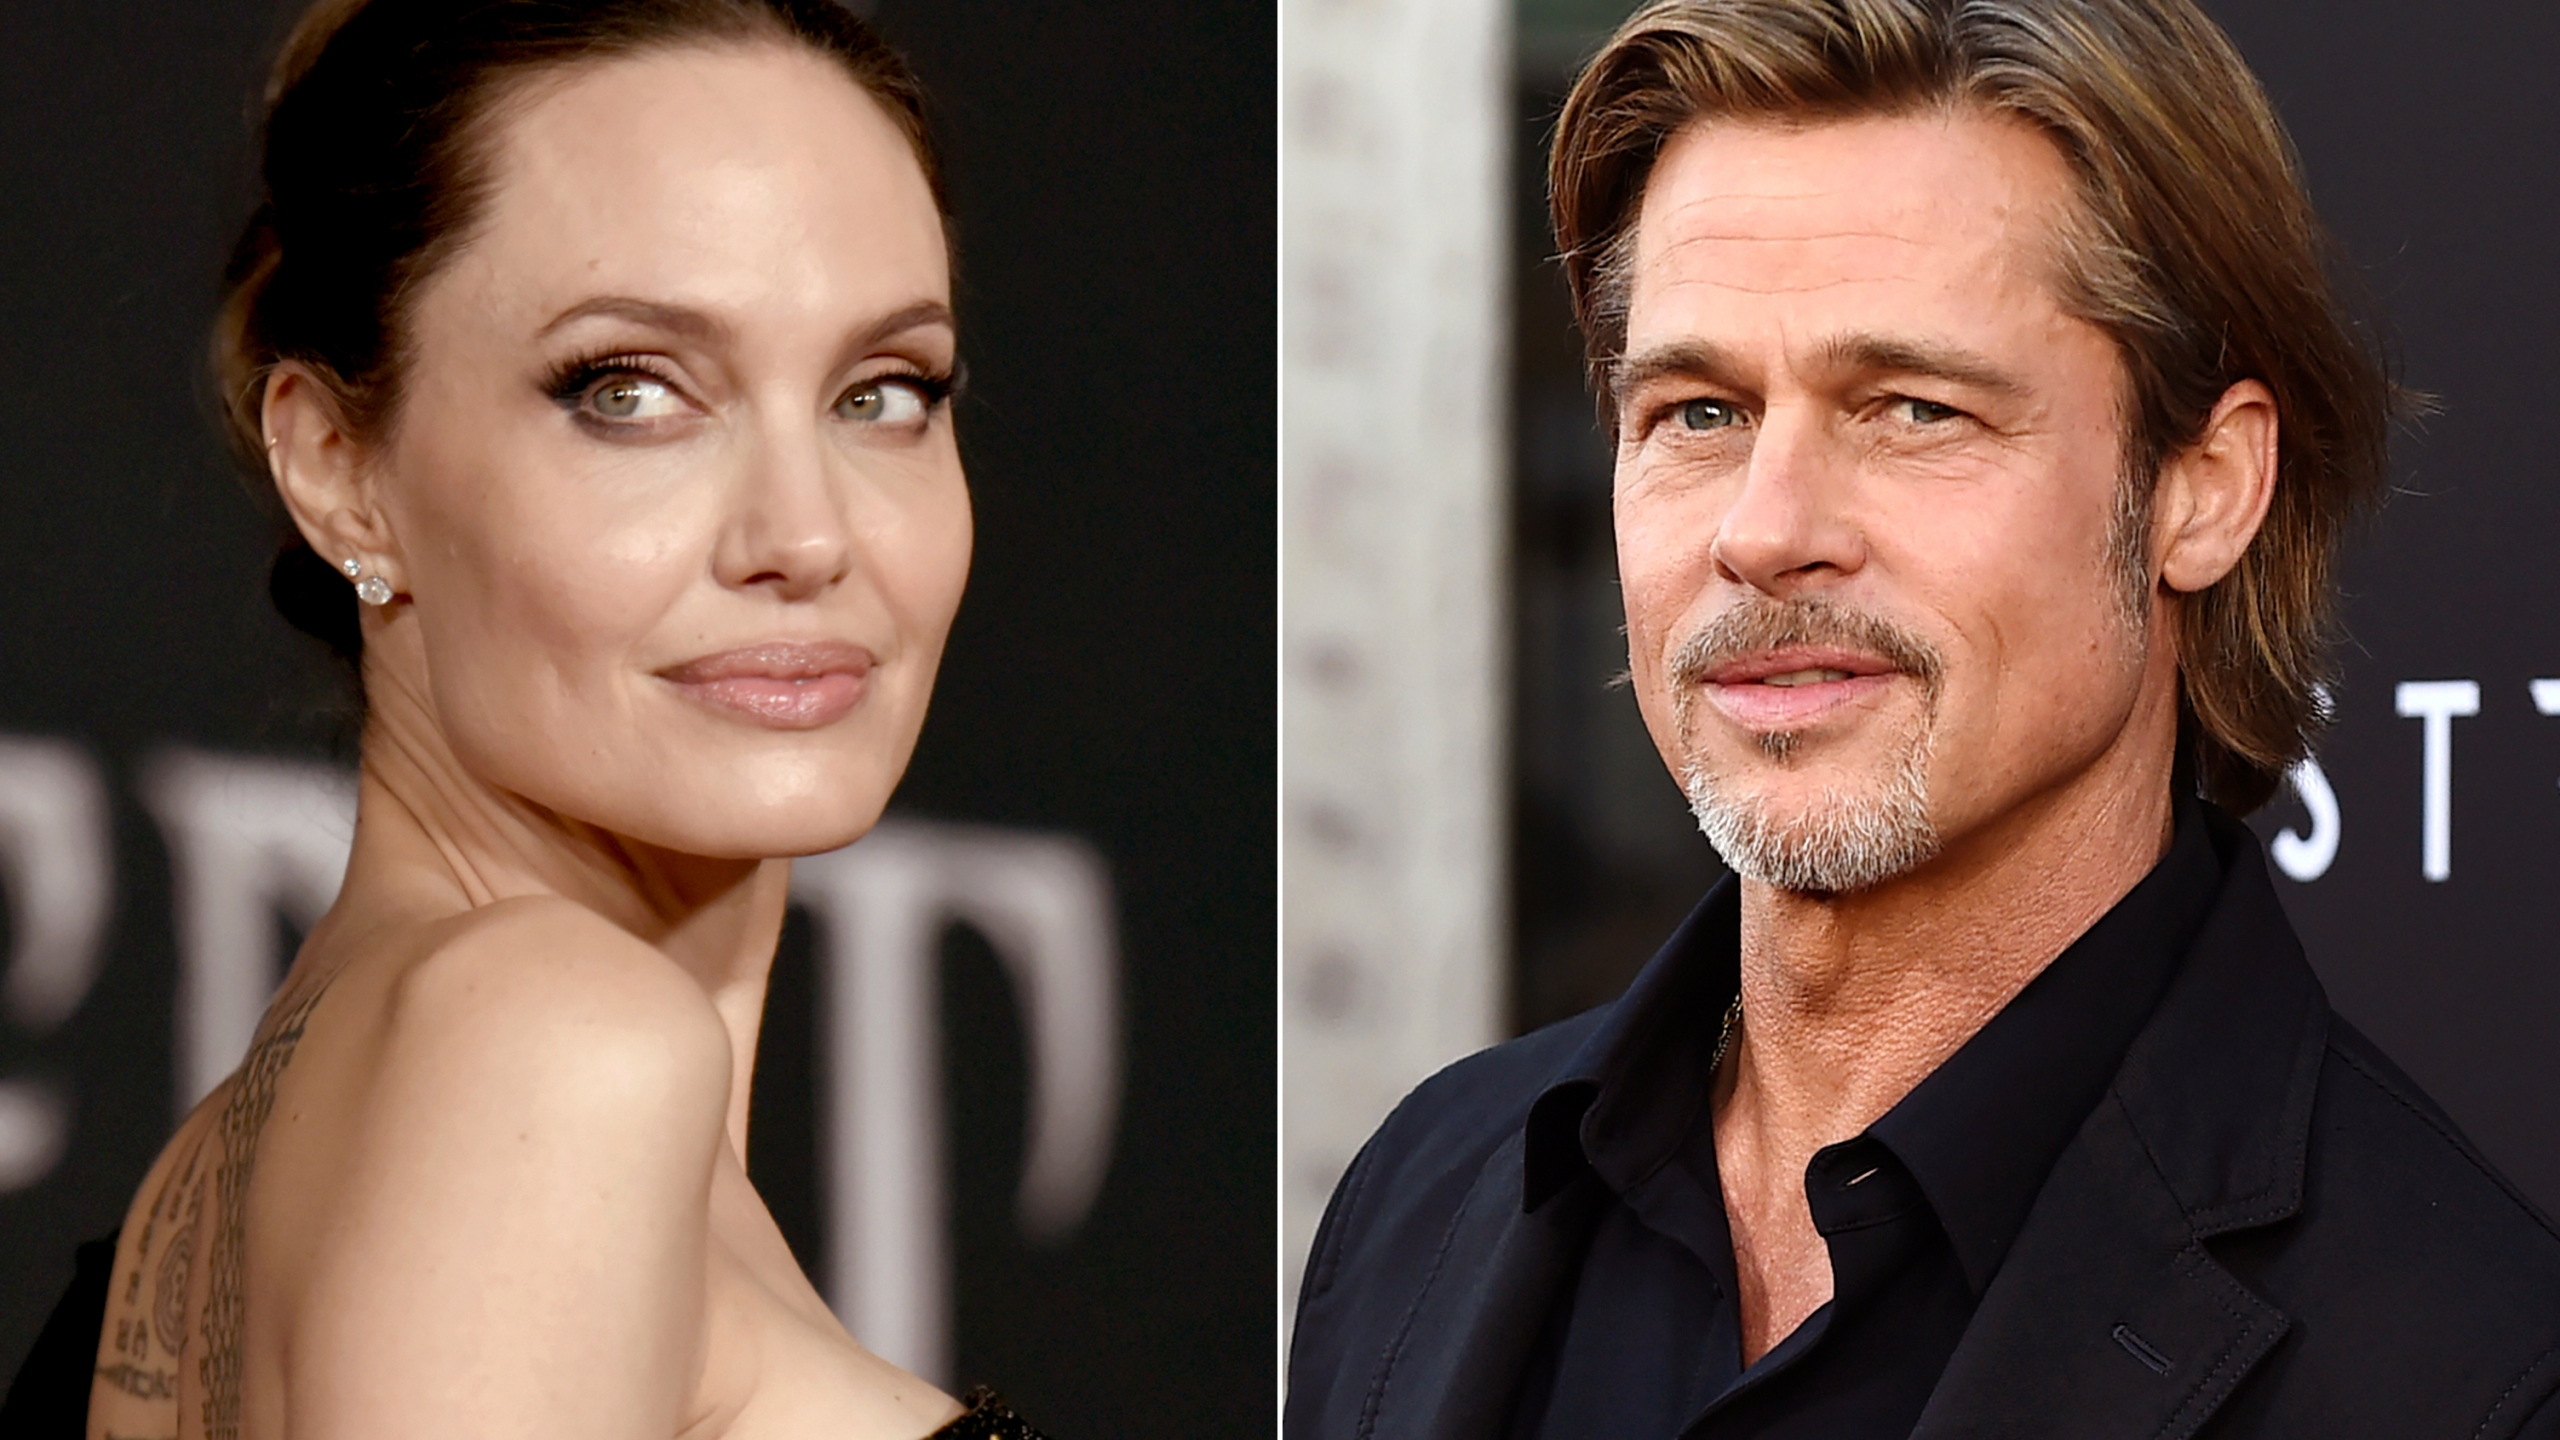 This file photo combination shows Angelina Jolie at a premiere in Los Angeles on Sept. 30, 2019, left, and Brad Pitt at a special screening on Sept. 18, 2019. (AP Photo/File)